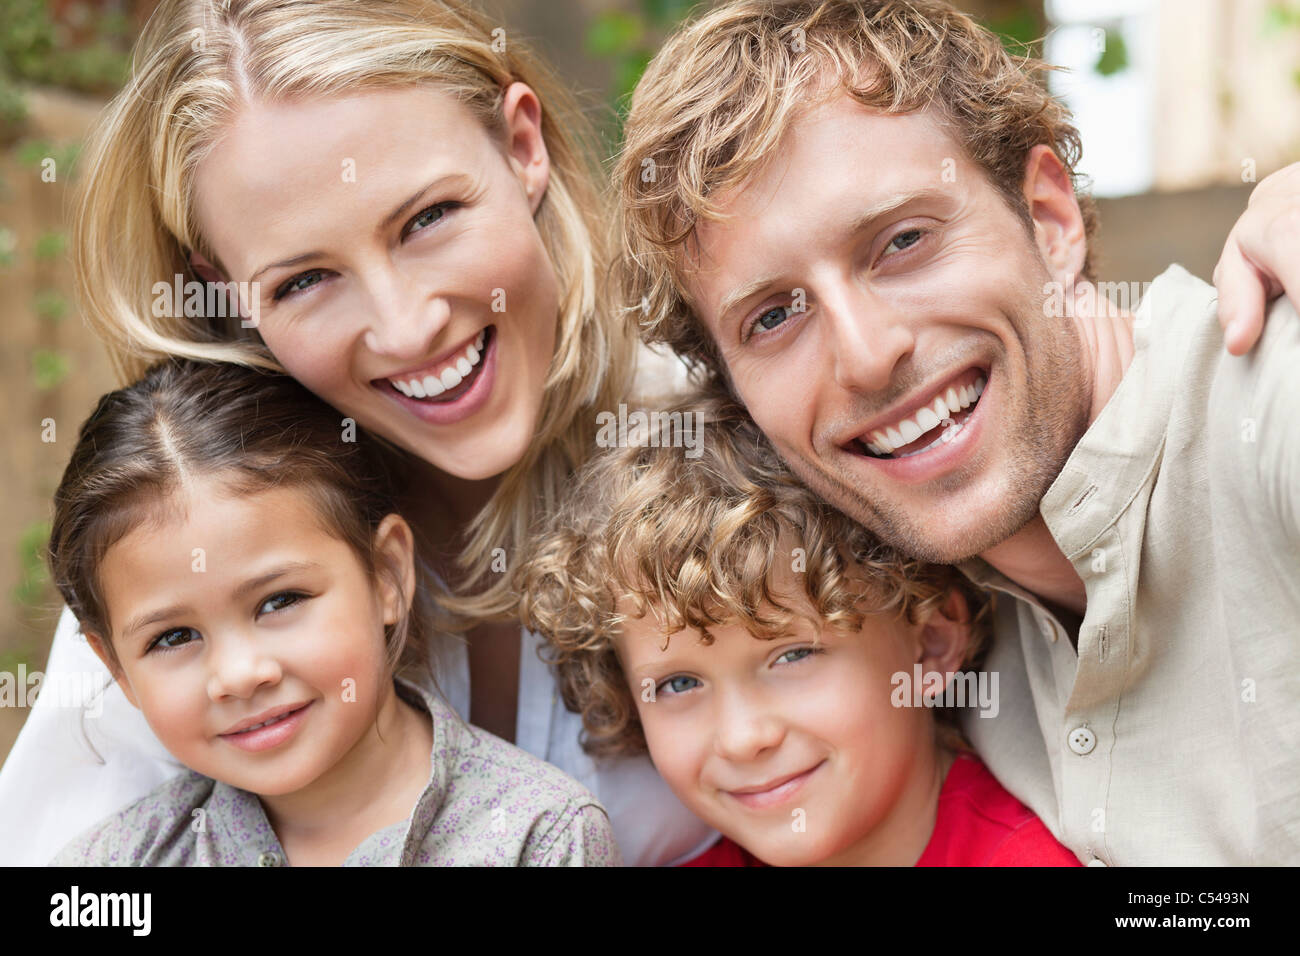 Portrait of a family with two children - Stock Image